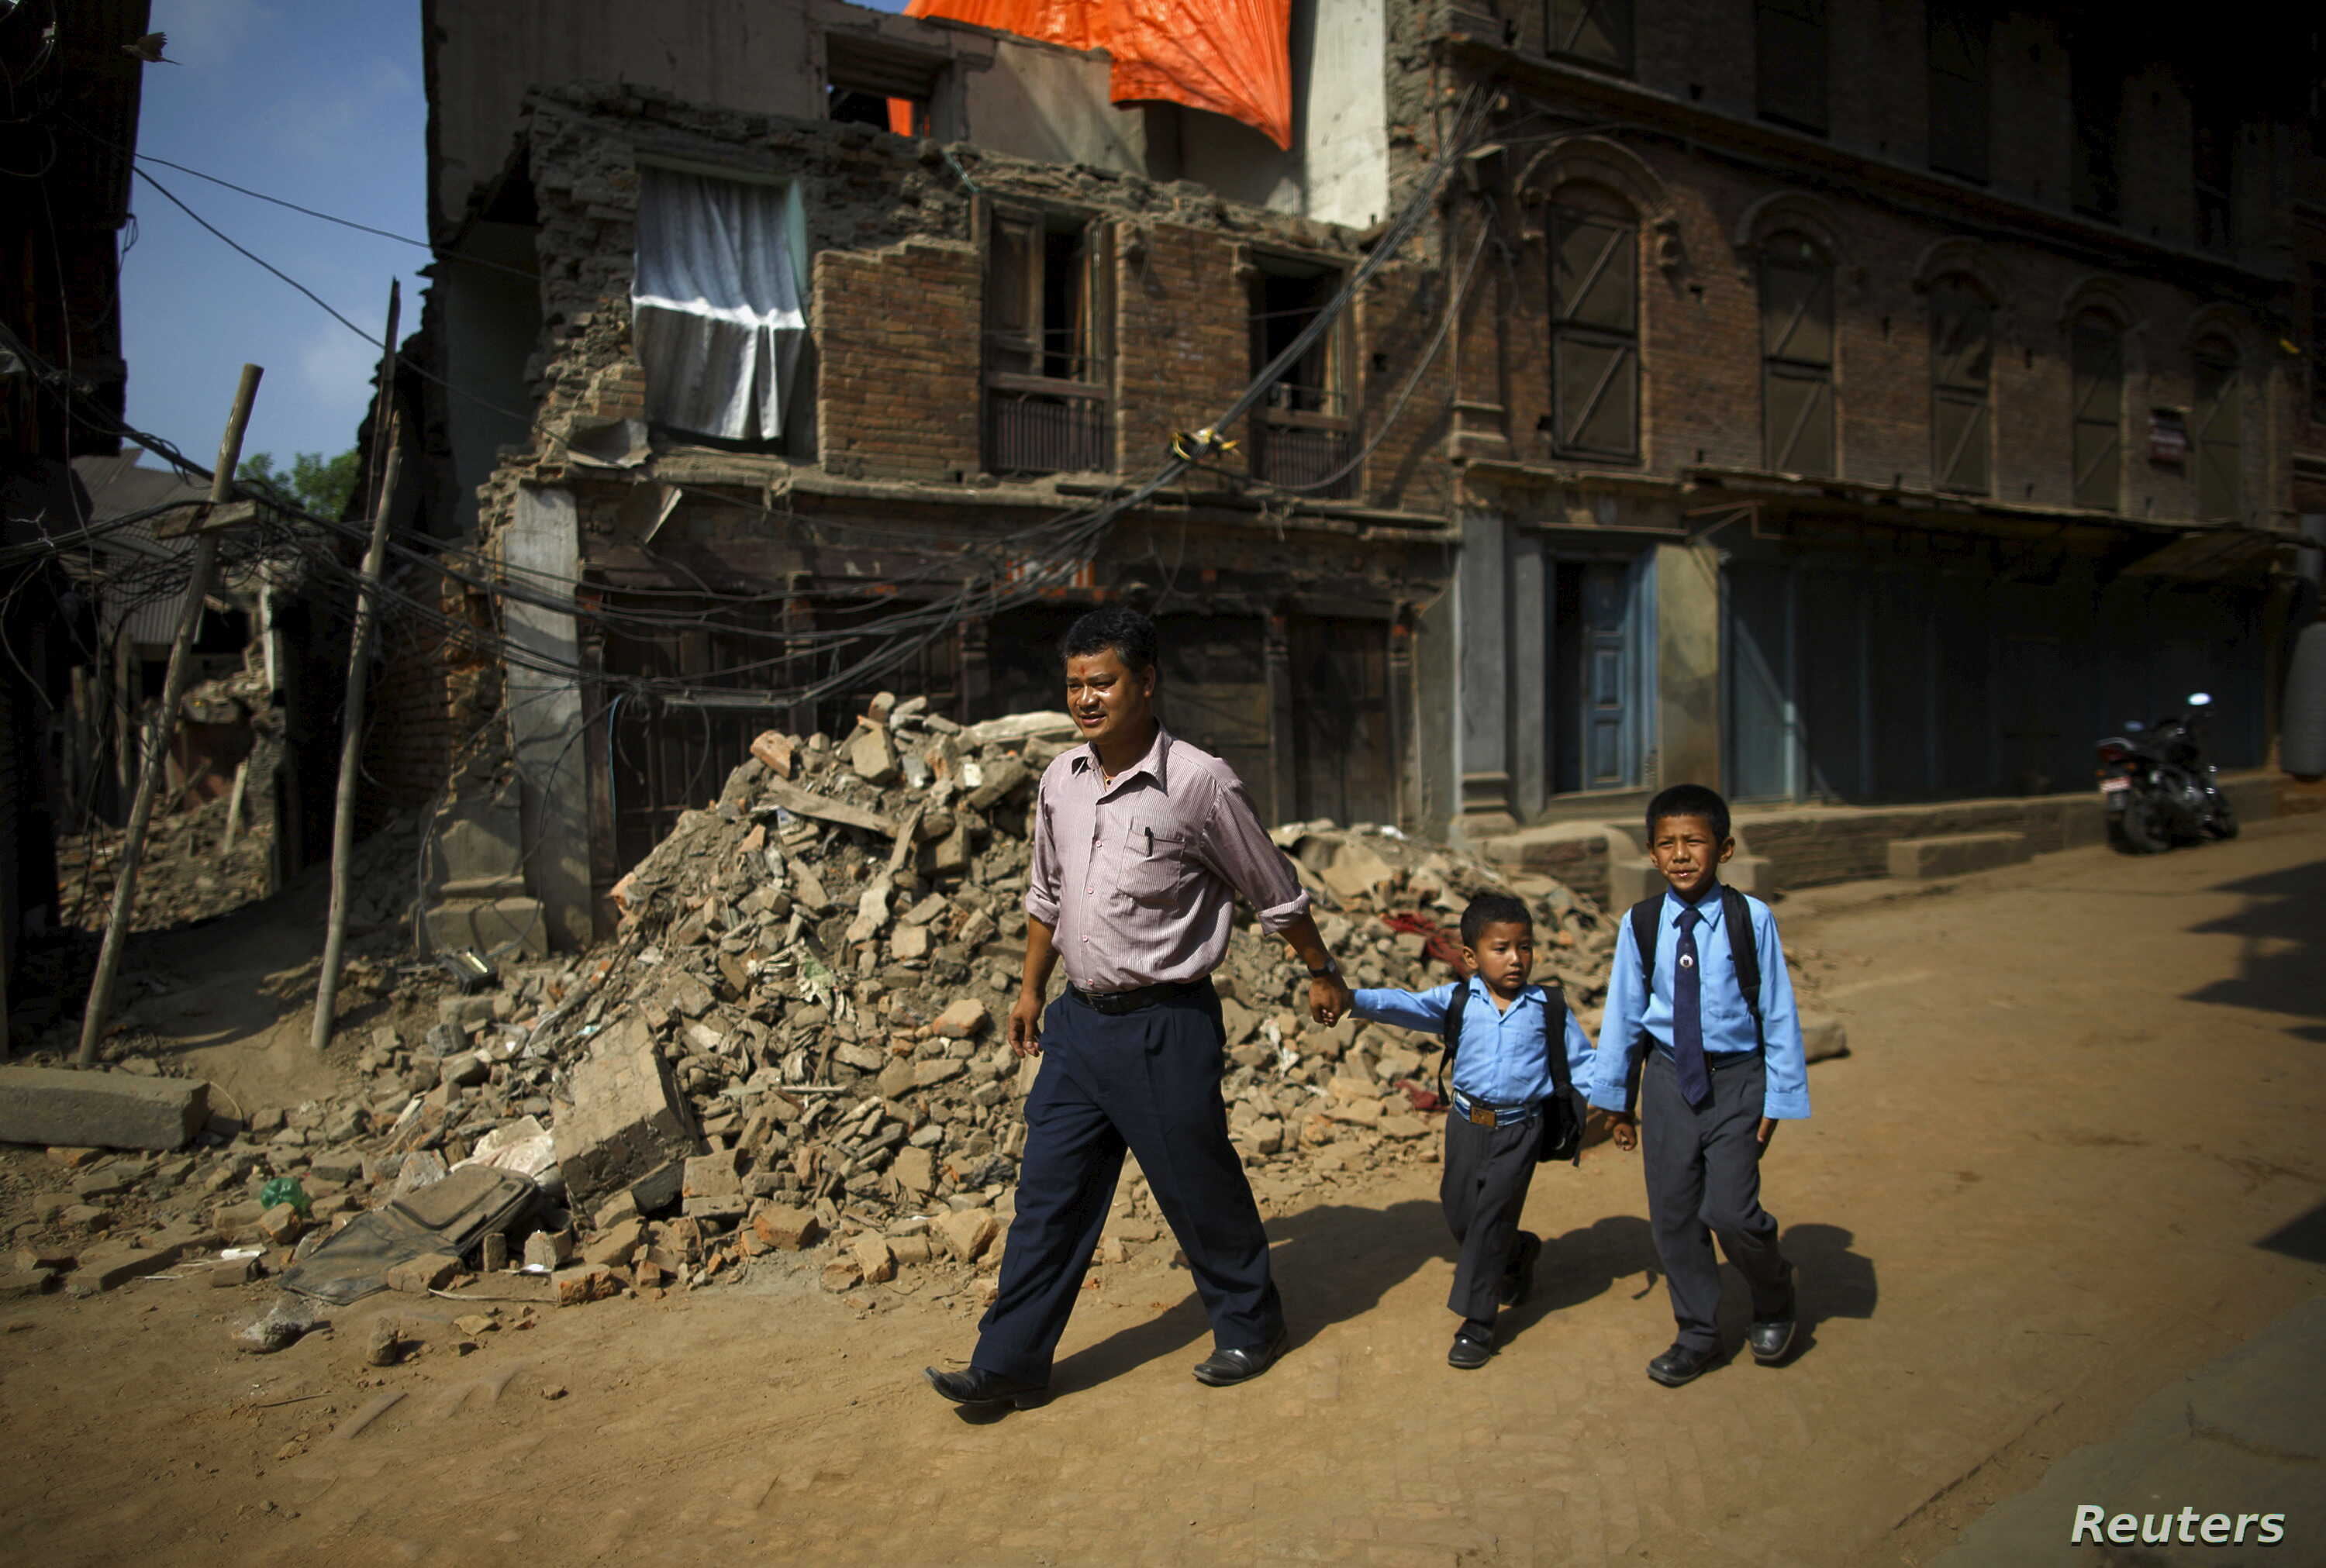 Birendra Karmacharya (L) walks past the debris of collapsed houses while holding the hand of his younger son Saksham Karmacharya, 4, along with his elder son Biyon Karmacharya (R), 9, as they head towards the school in Bhaktapur, Nepal, May 31, 2015....